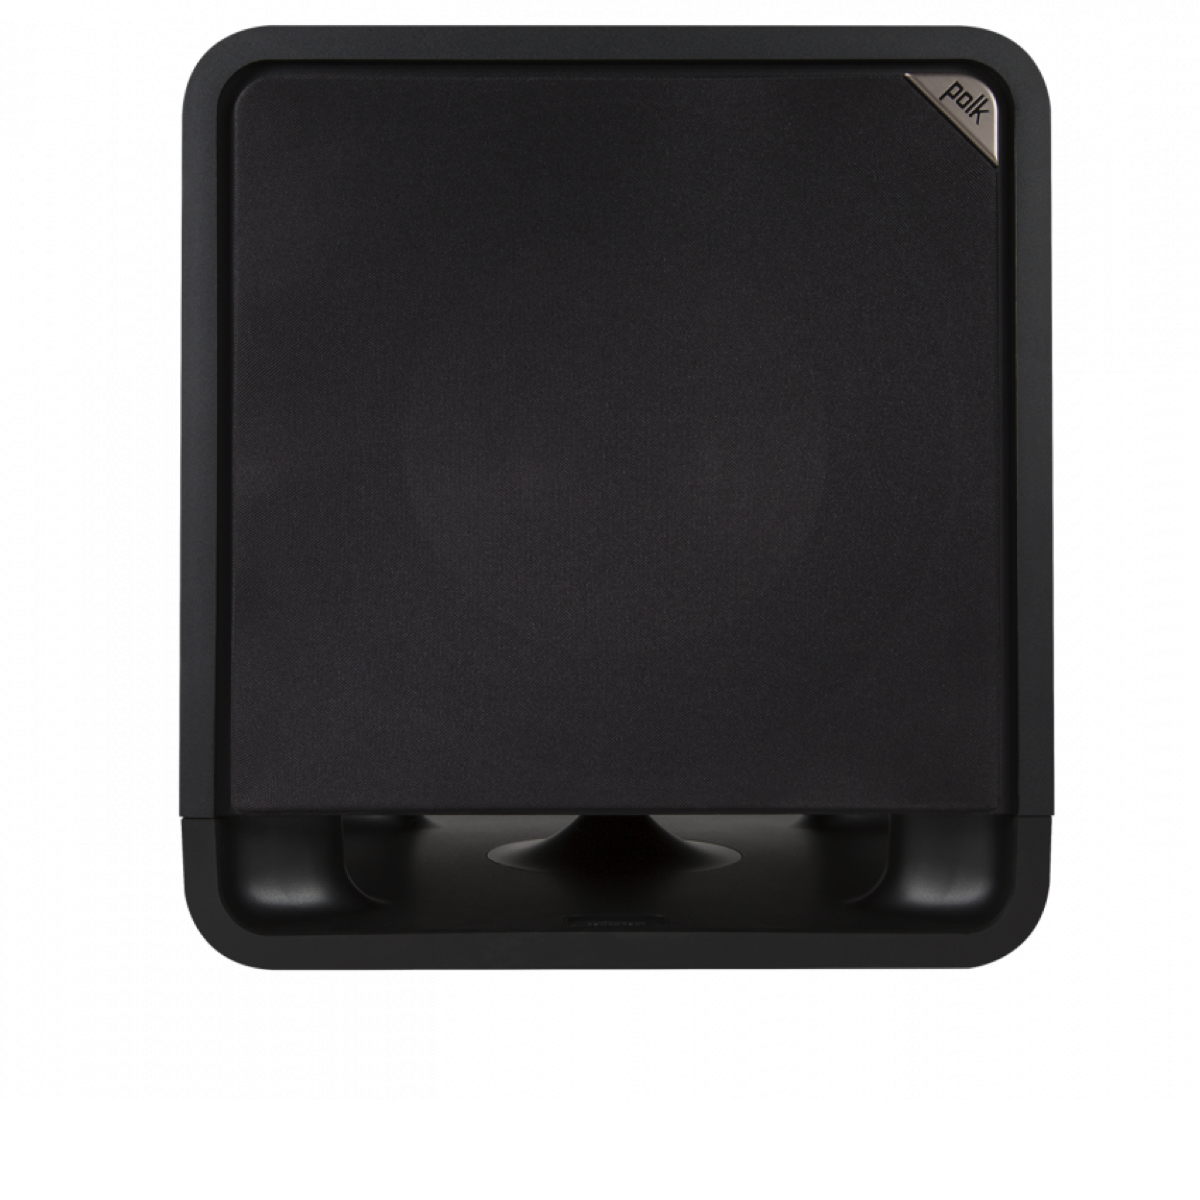 Polk audio HTS 12 Subwoofer